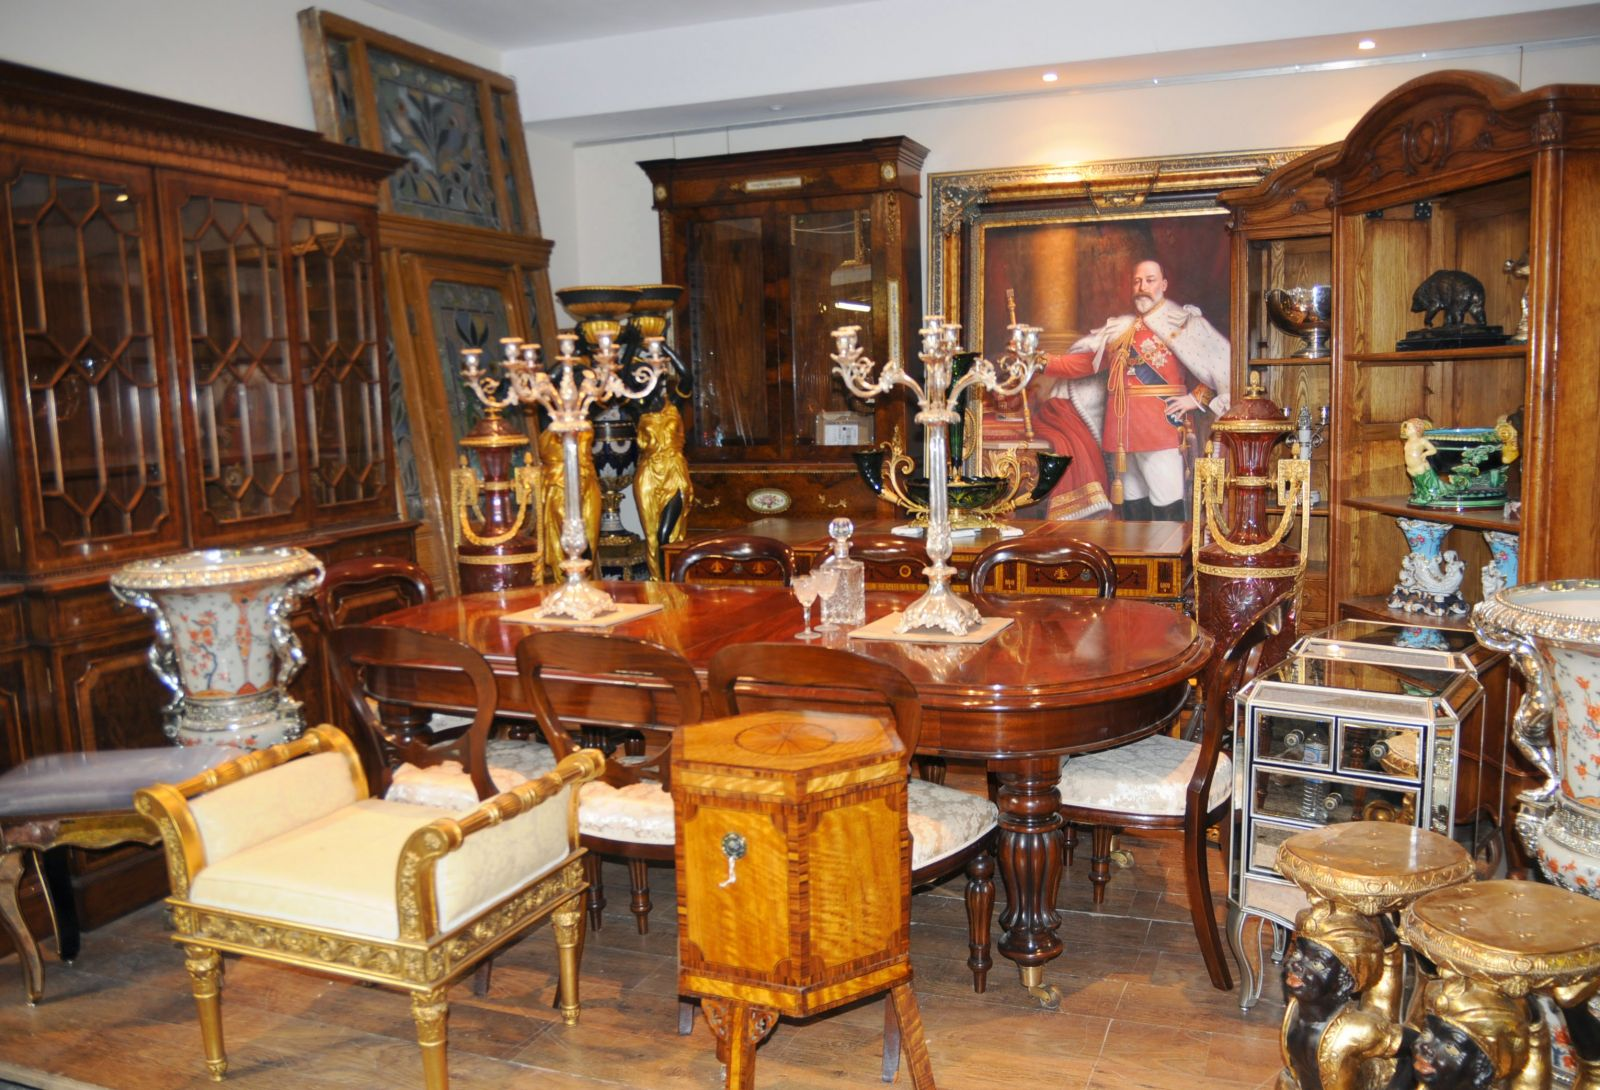 Antique Dining Tables Desks Chairs Reproduction Furniture Sets